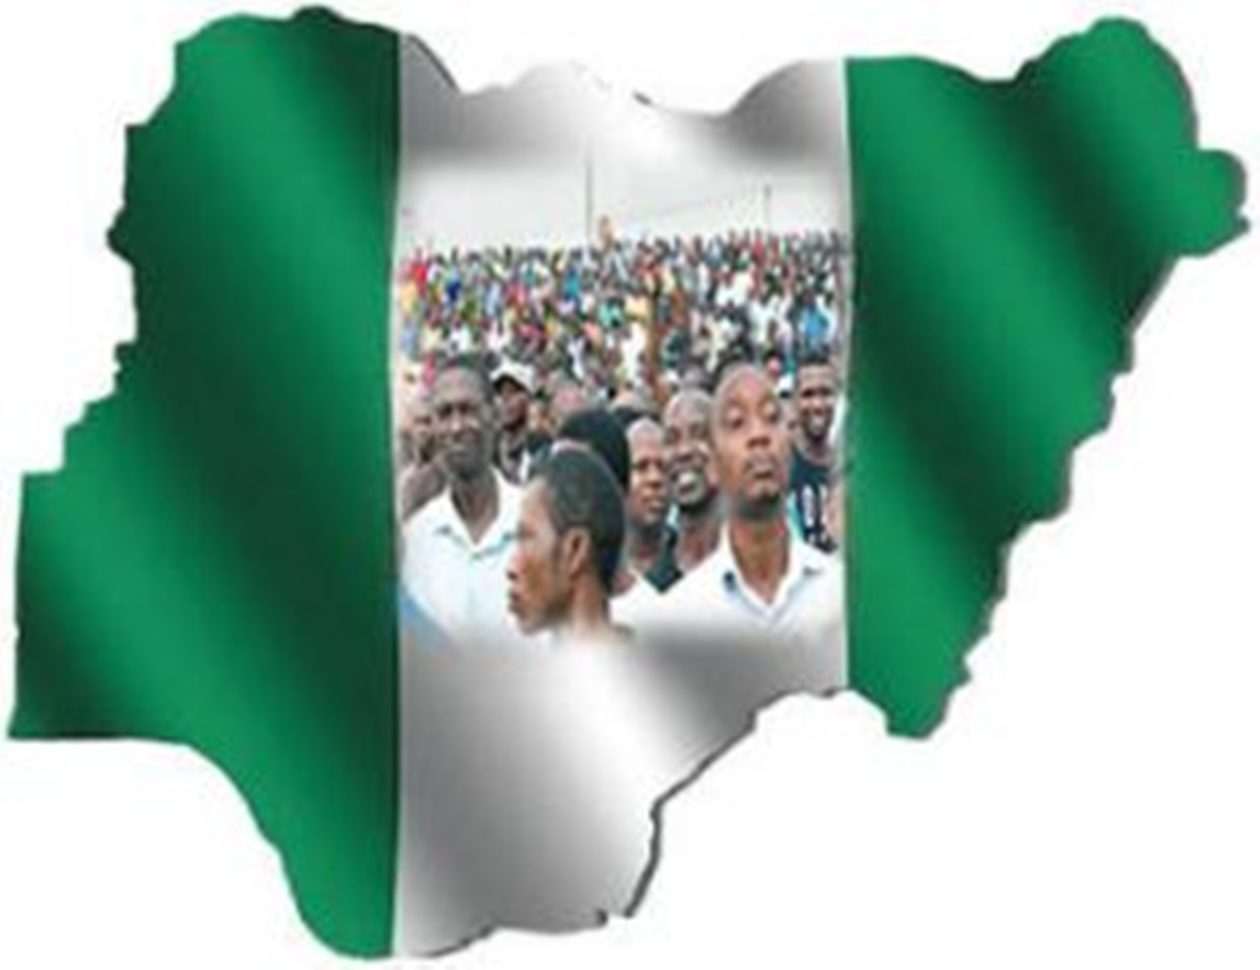 'Don't be used by politicians as thugs' - Vanguard